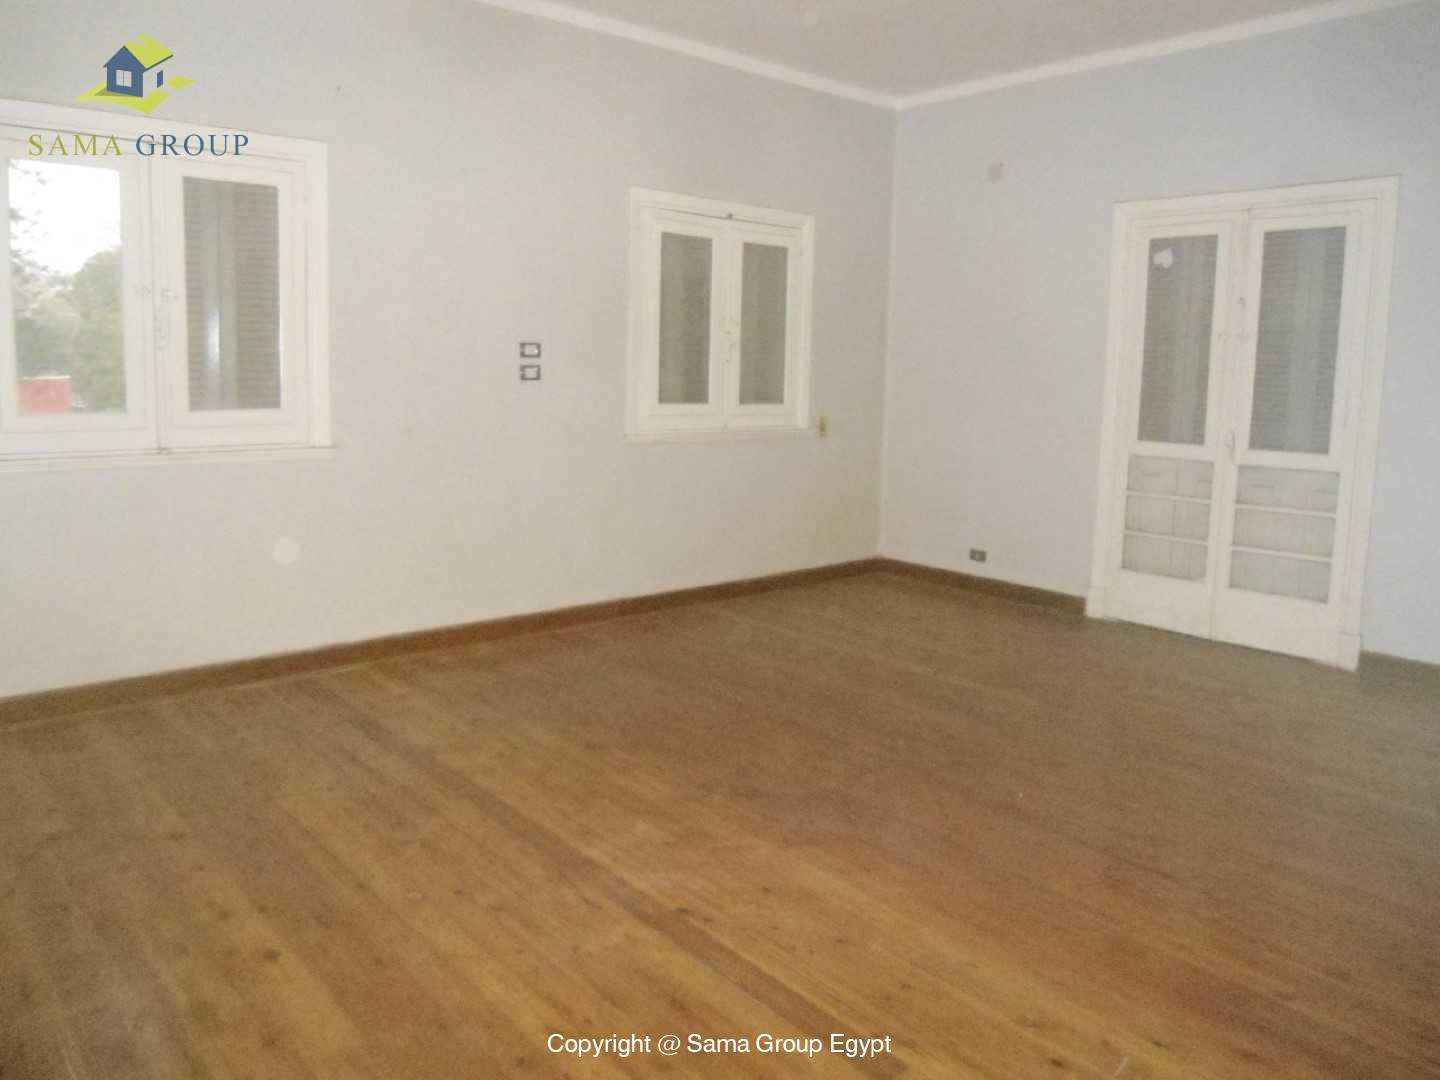 Villa Commercial For Rent In Maadi,Semi furnished,Villa NO #2